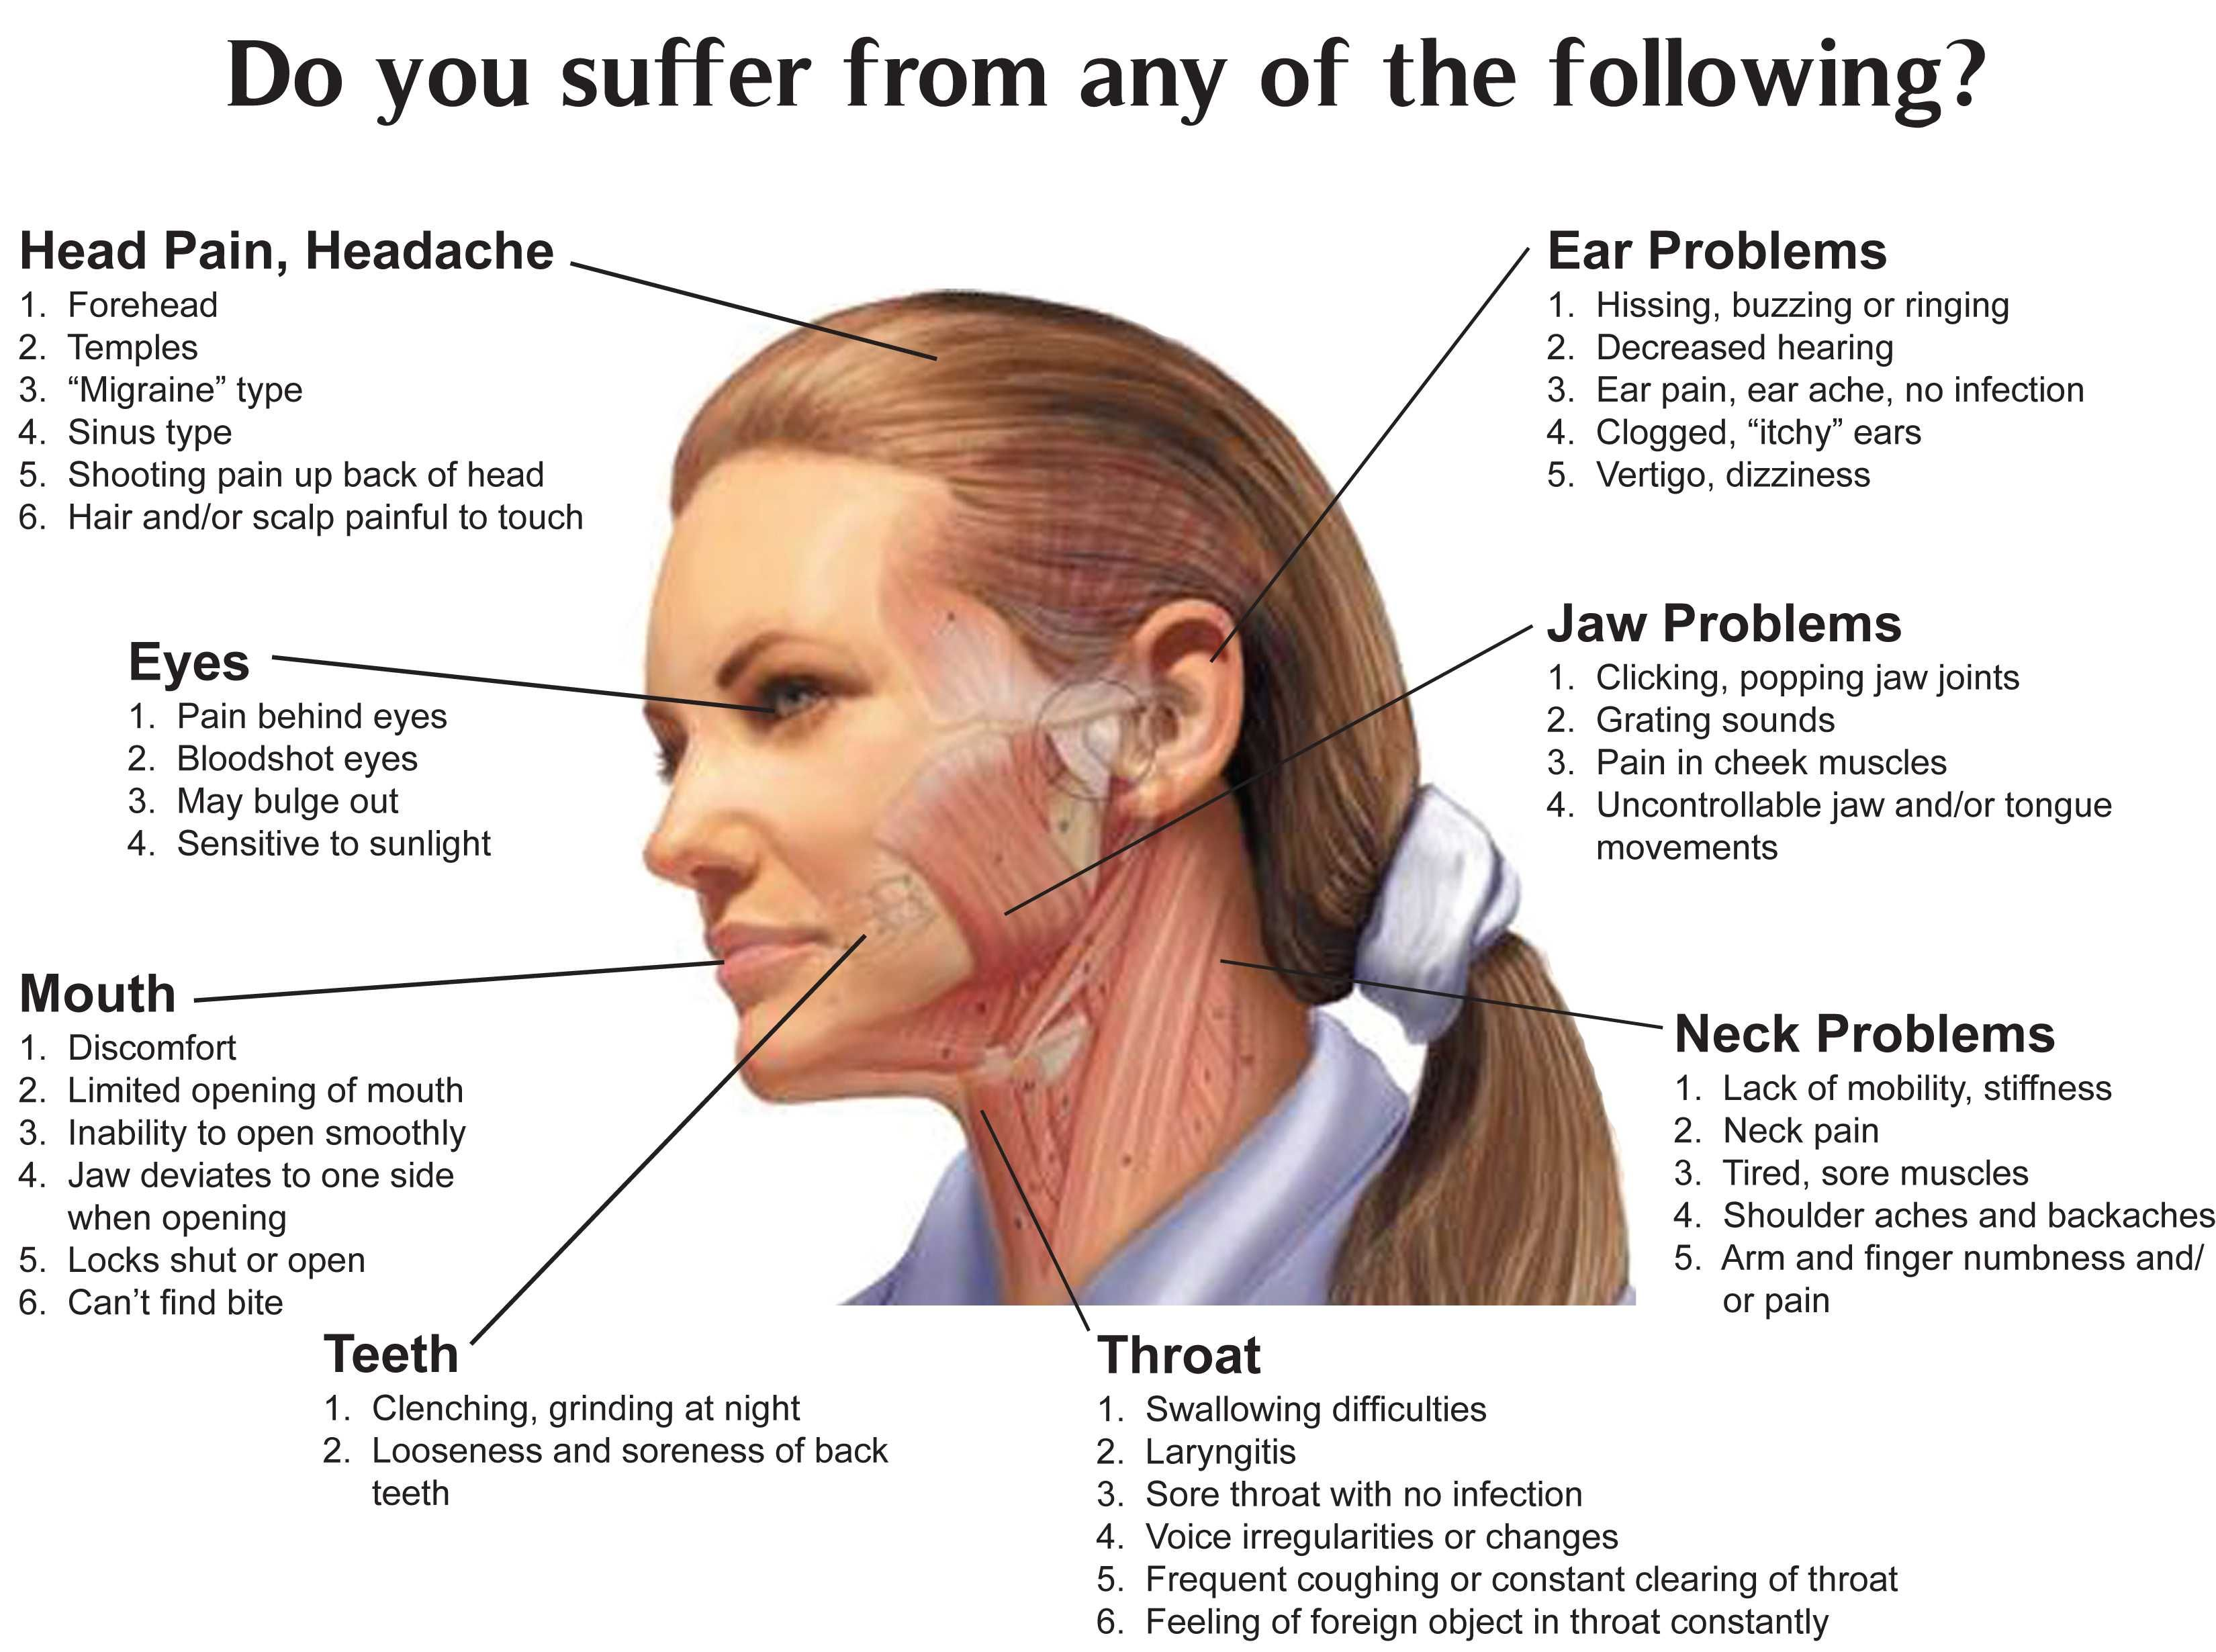 How to Reduce Jaw Pain